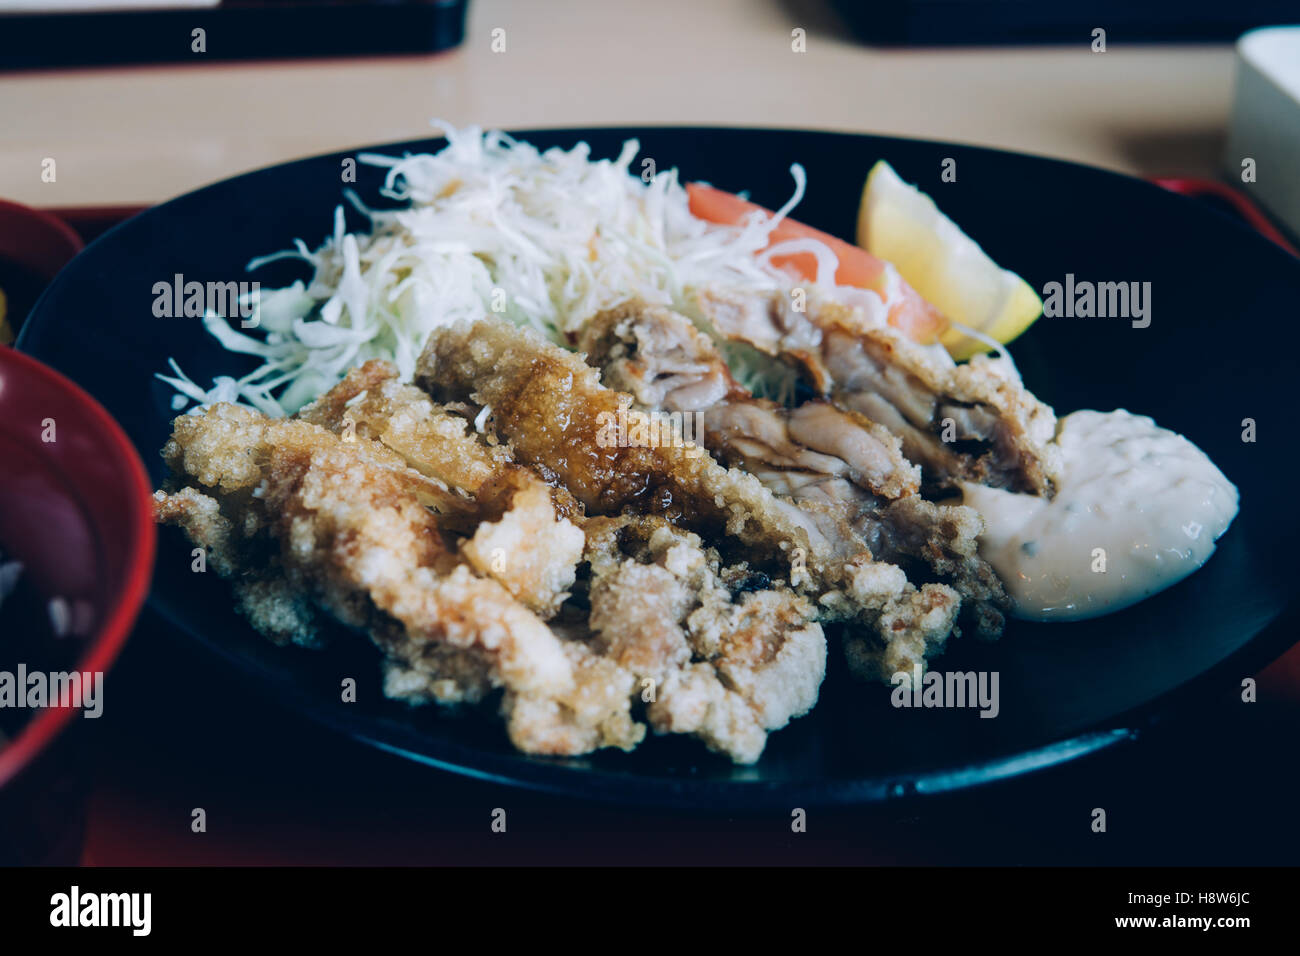 Japanese Style Dish: Fried Chicken and Salad with Miso Soup in retro filter hipster stylized effect - Stock Image